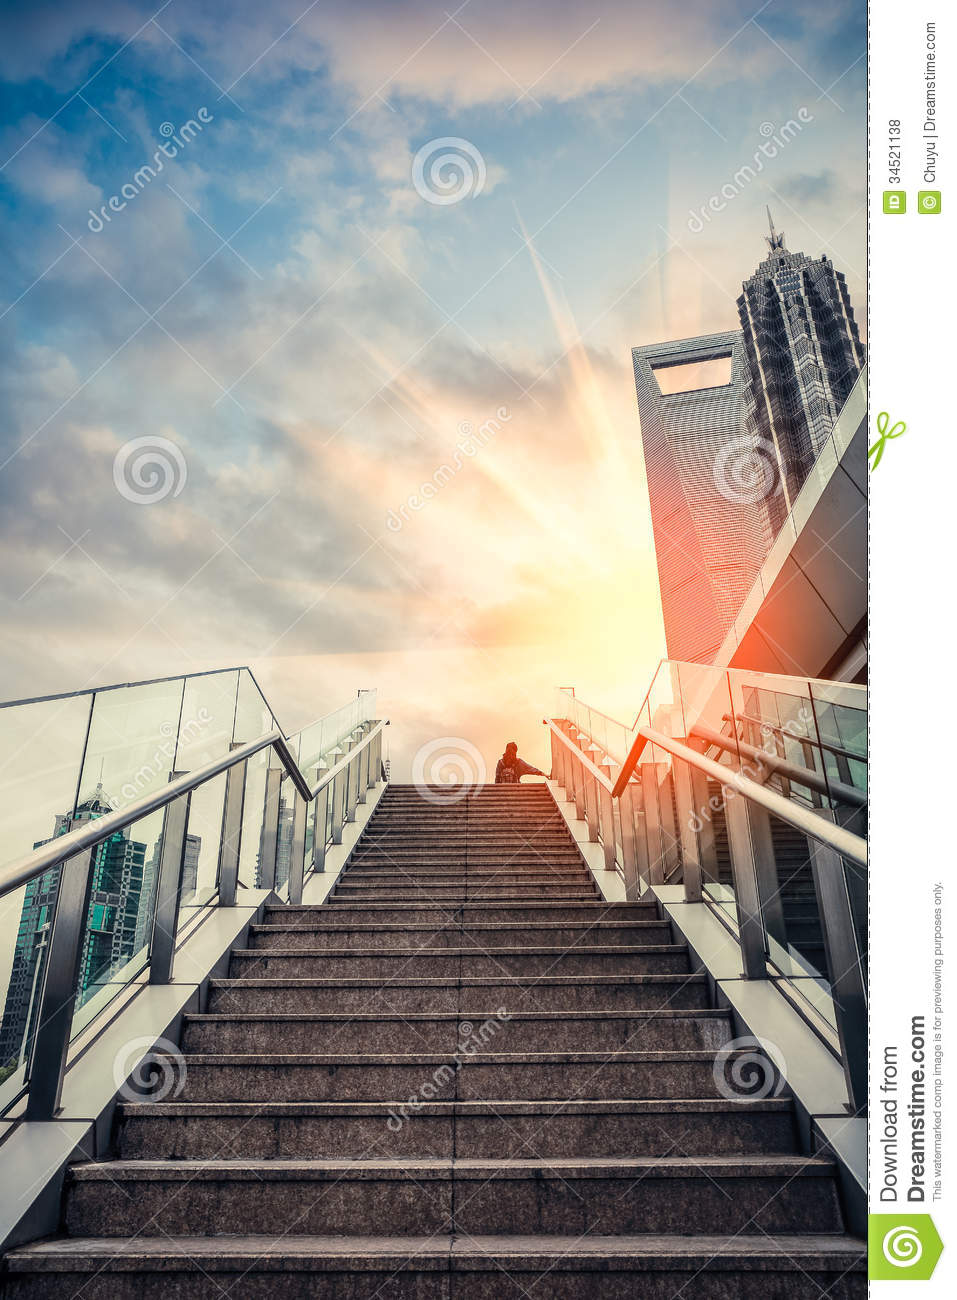 Urban Outdoor Stairs In Sunset Stock Photo